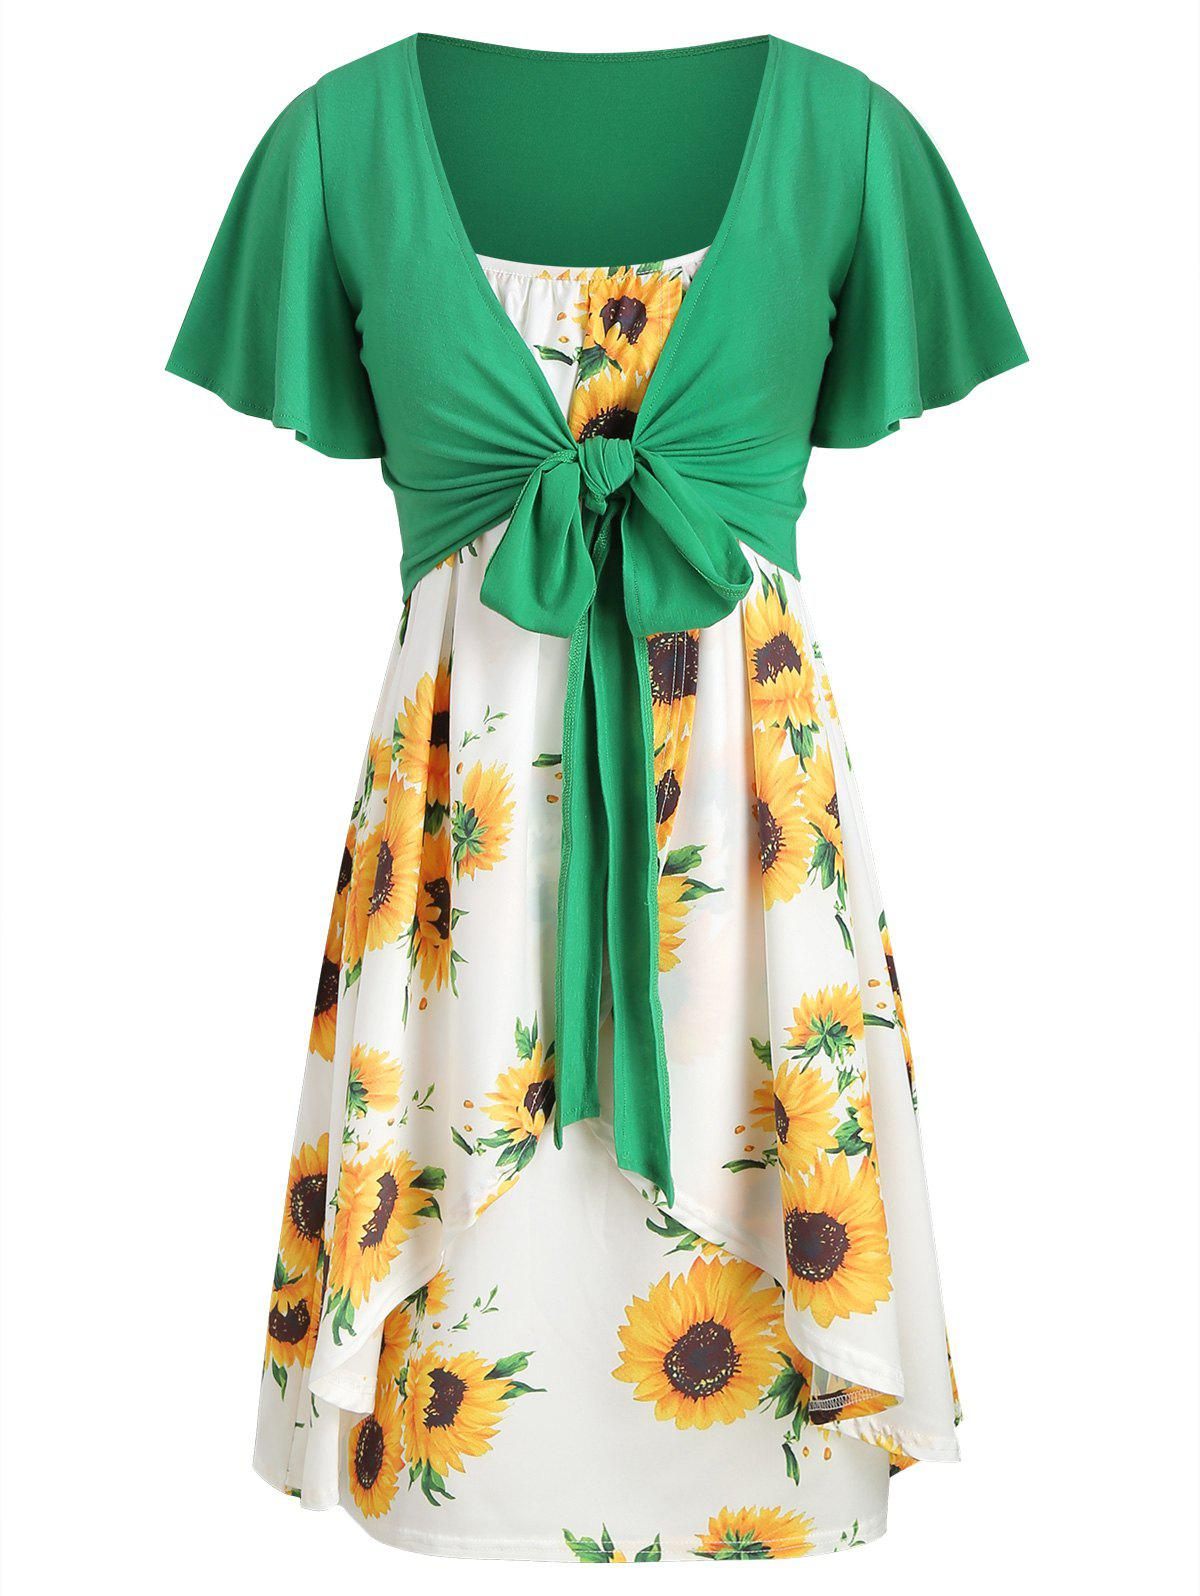 66fa783c222 28% OFF  Knotted Top And Sunflower Overlap Dress Set